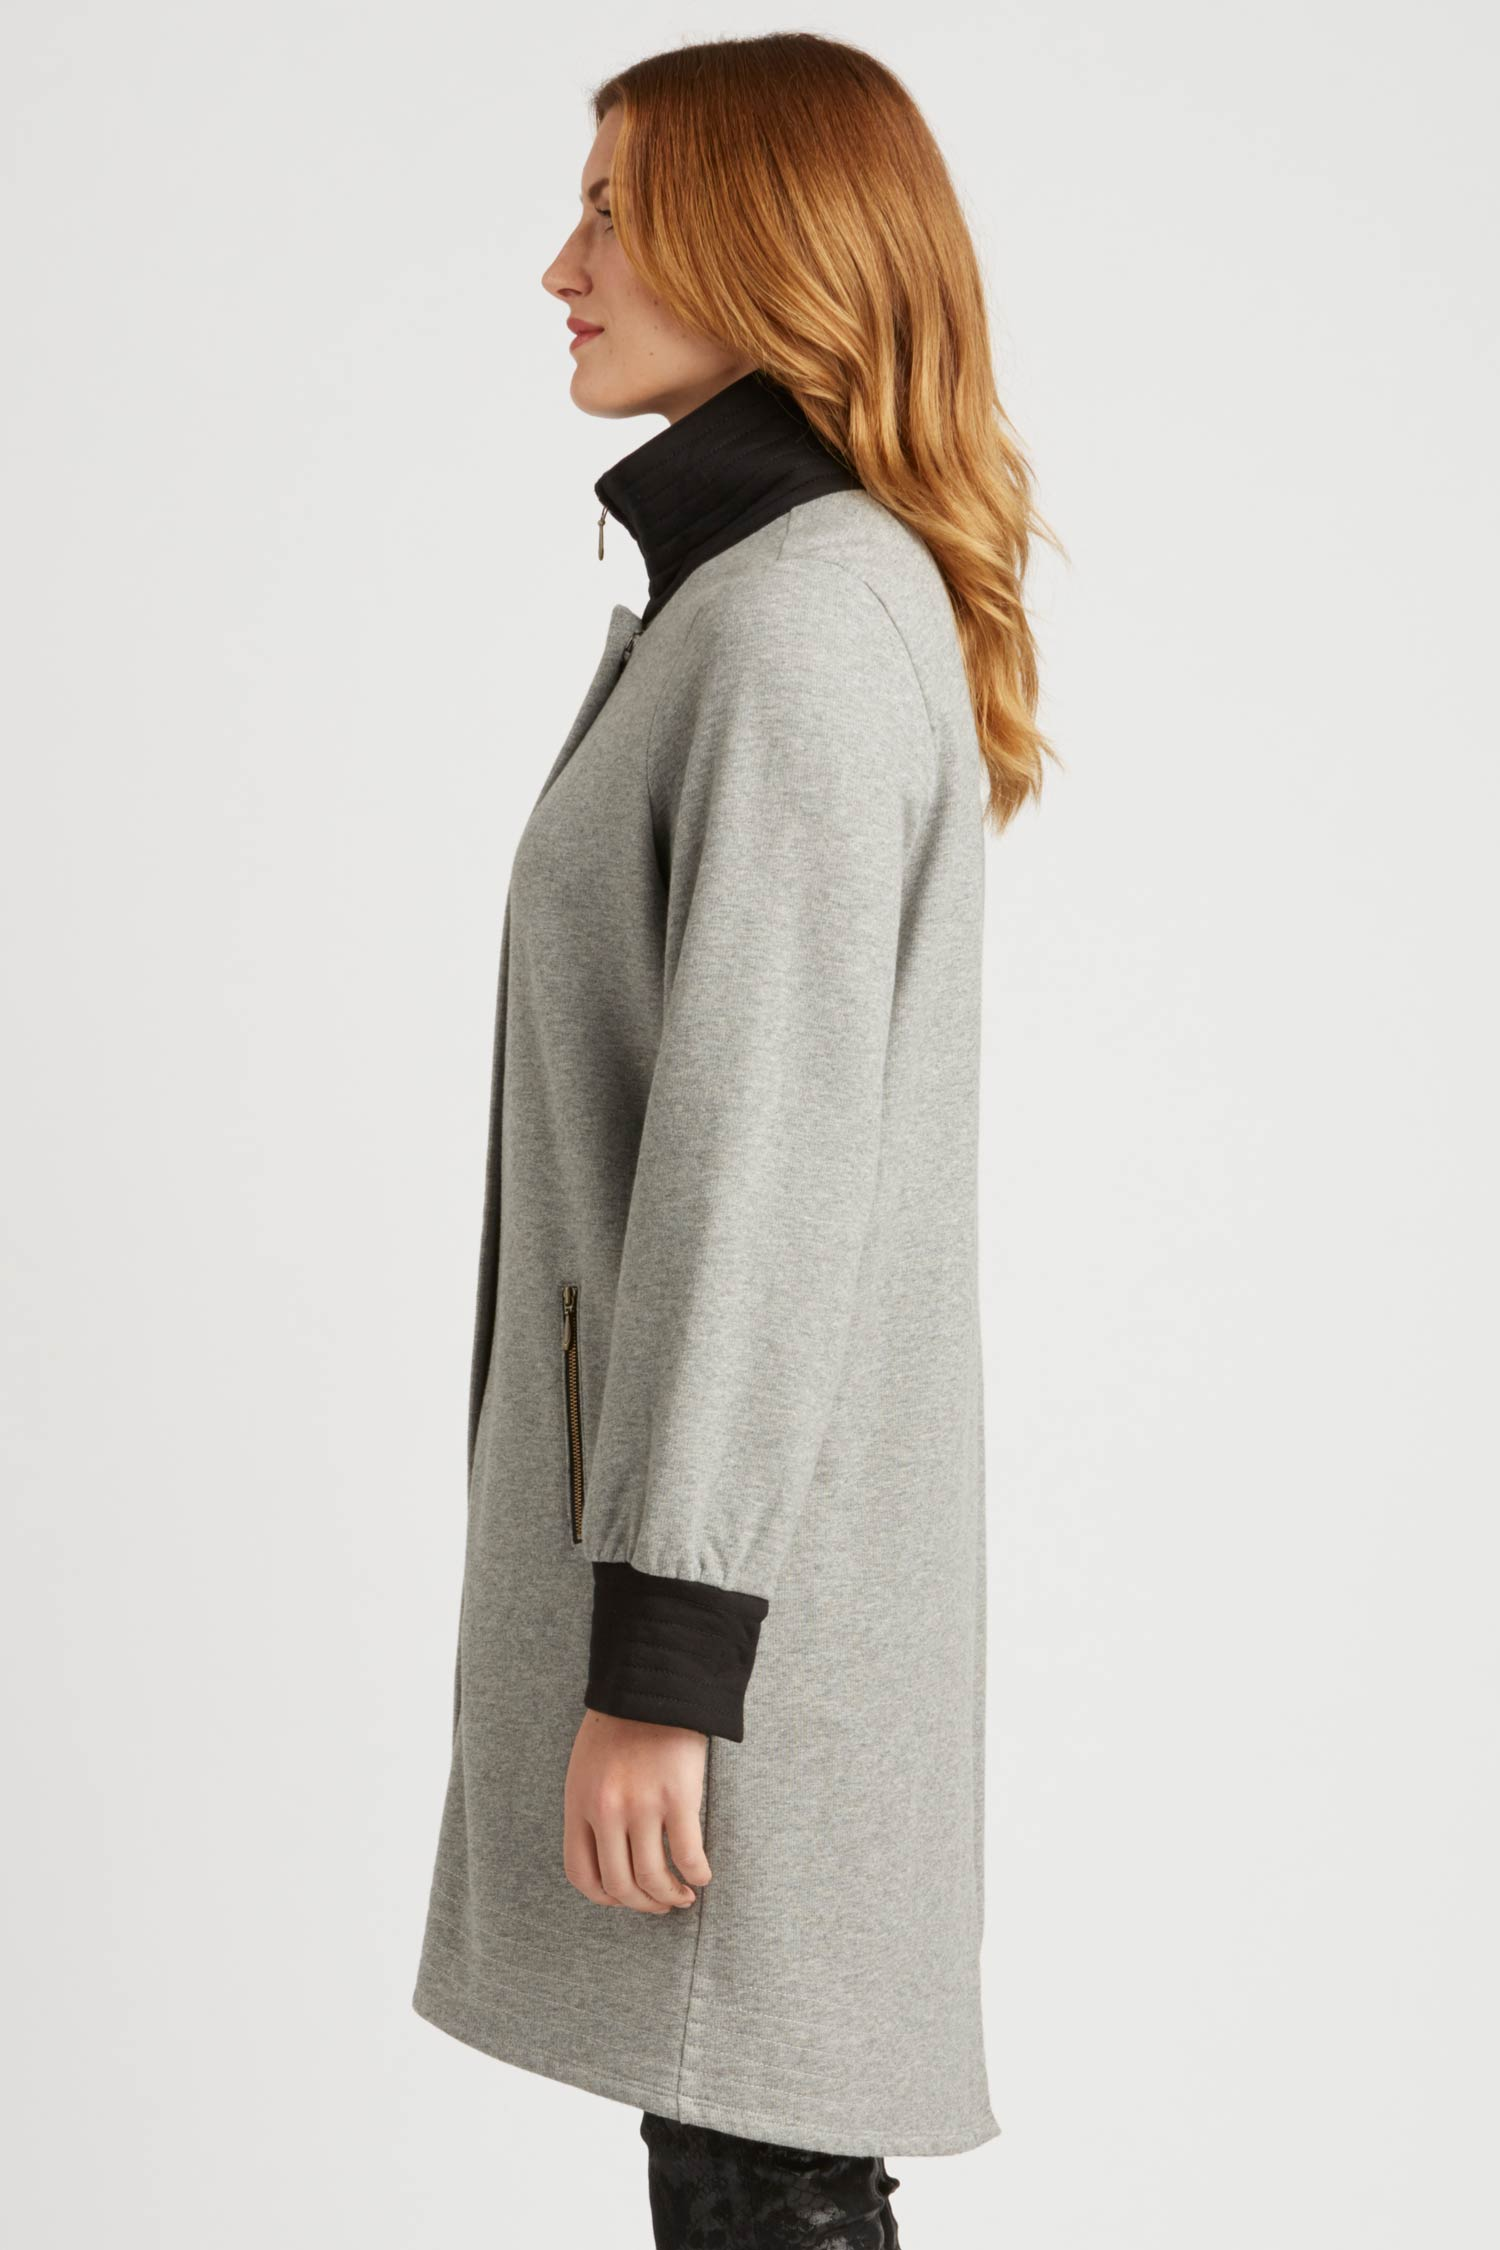 Womens Fleece Bomber Coat | Gray | Sustainable Fashion